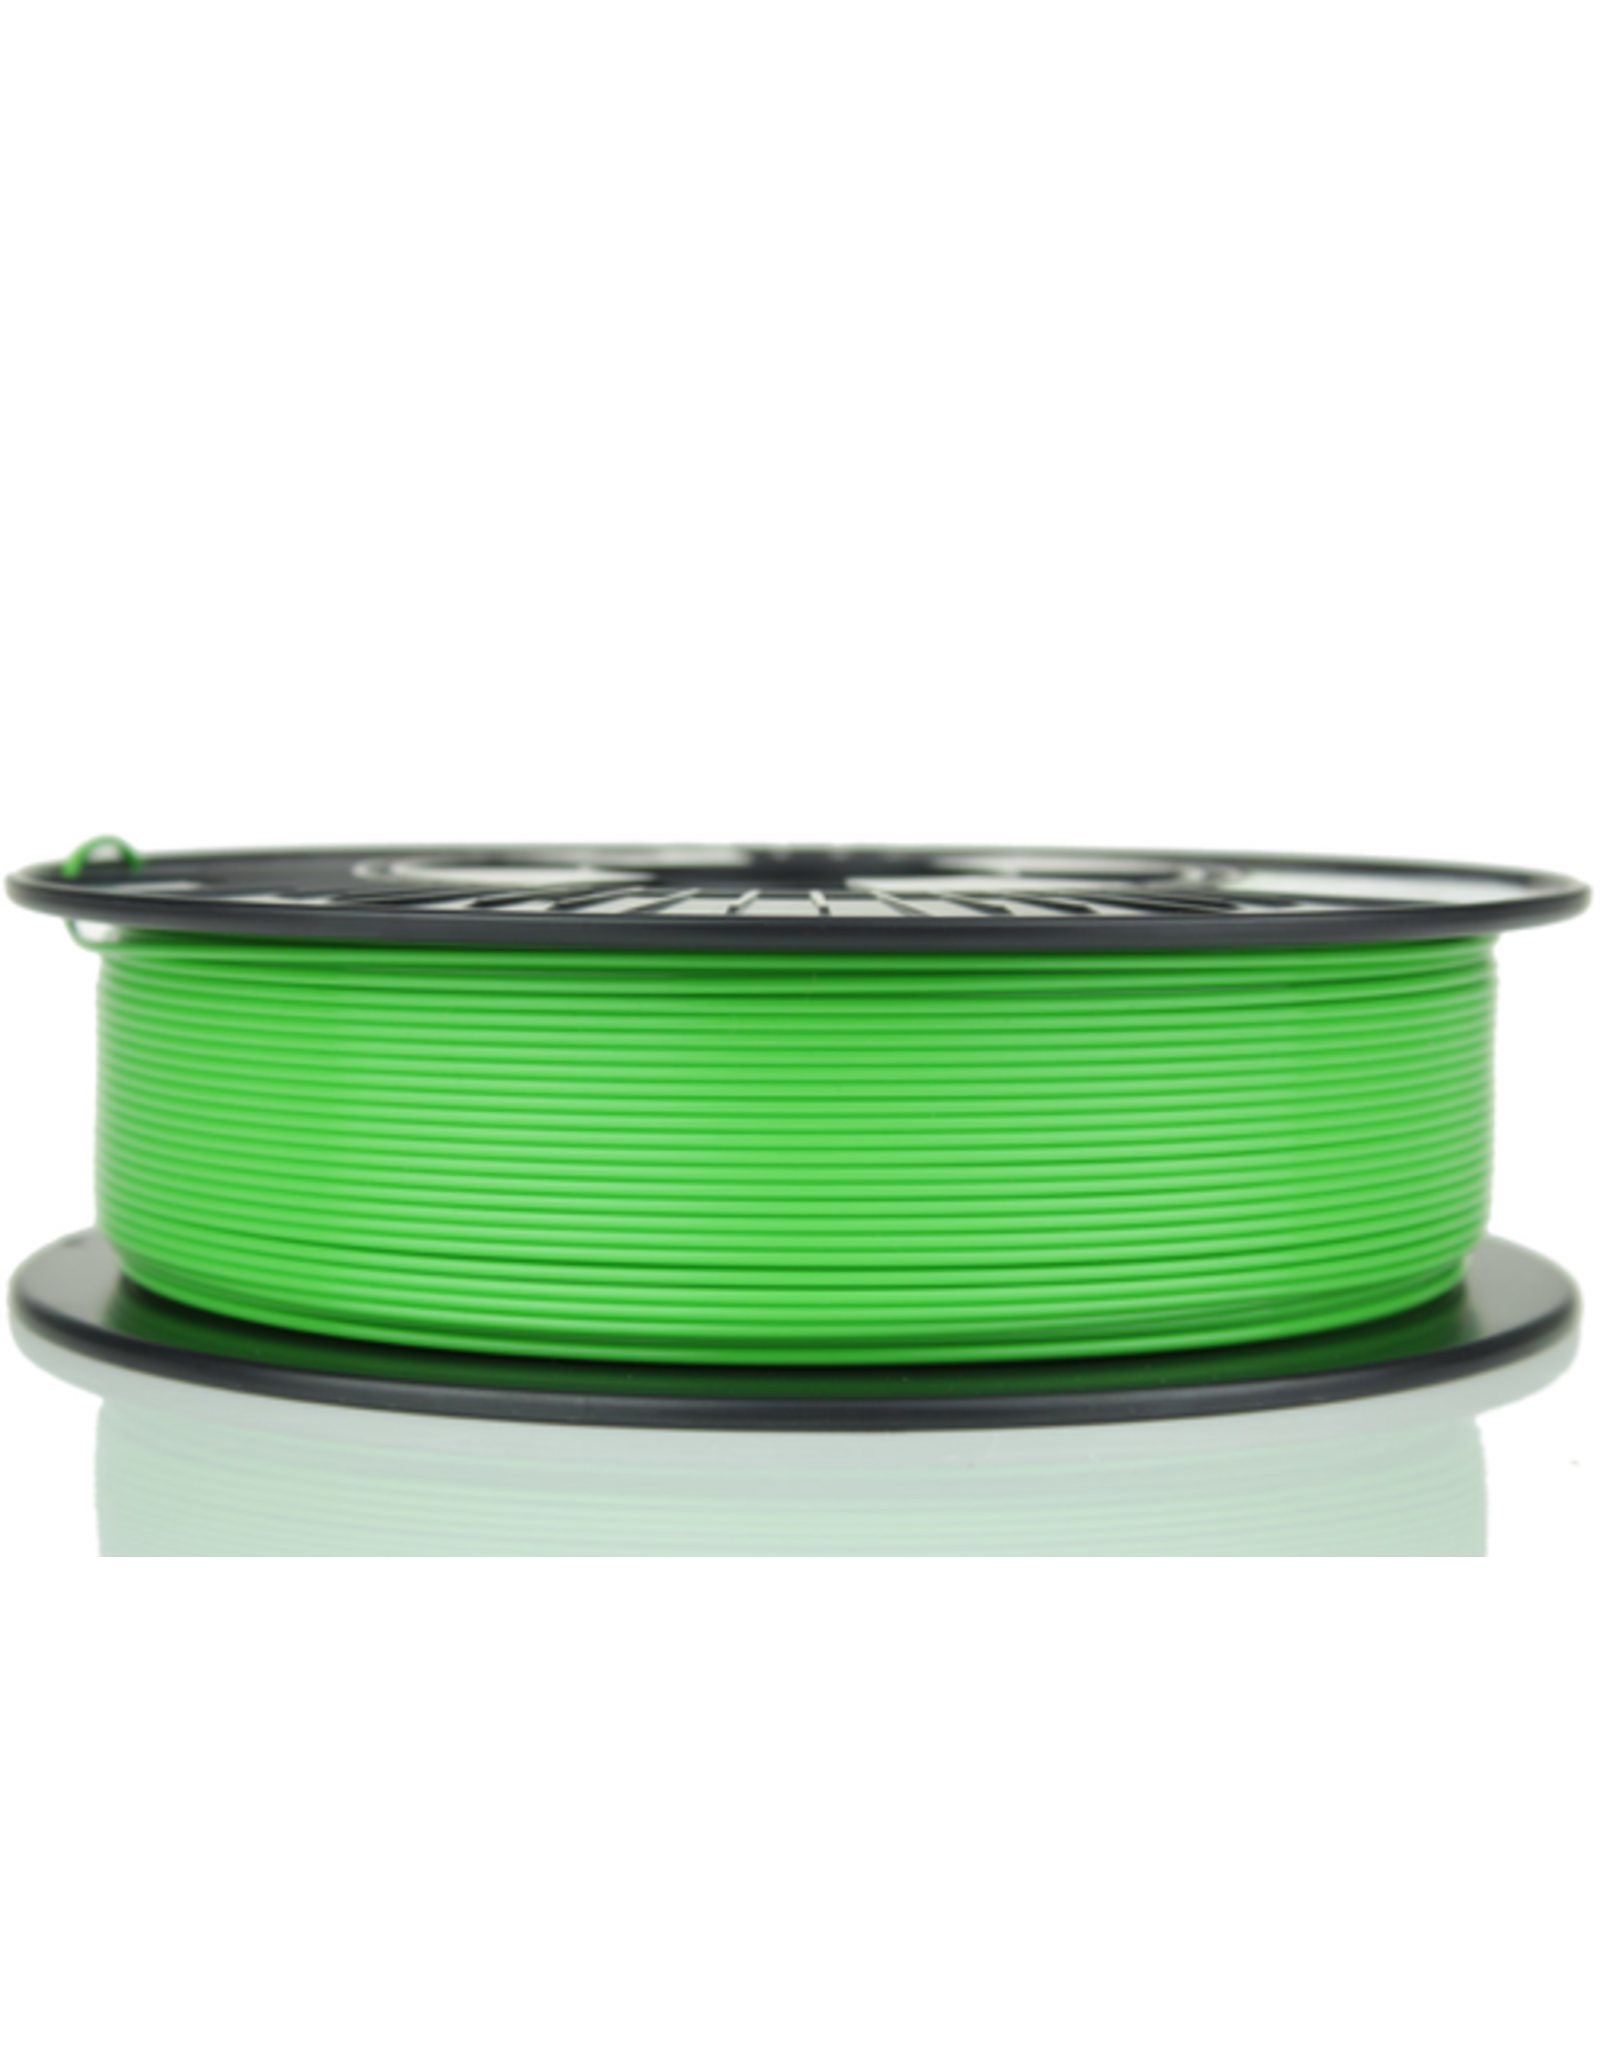 Material4Print ABS Spring green